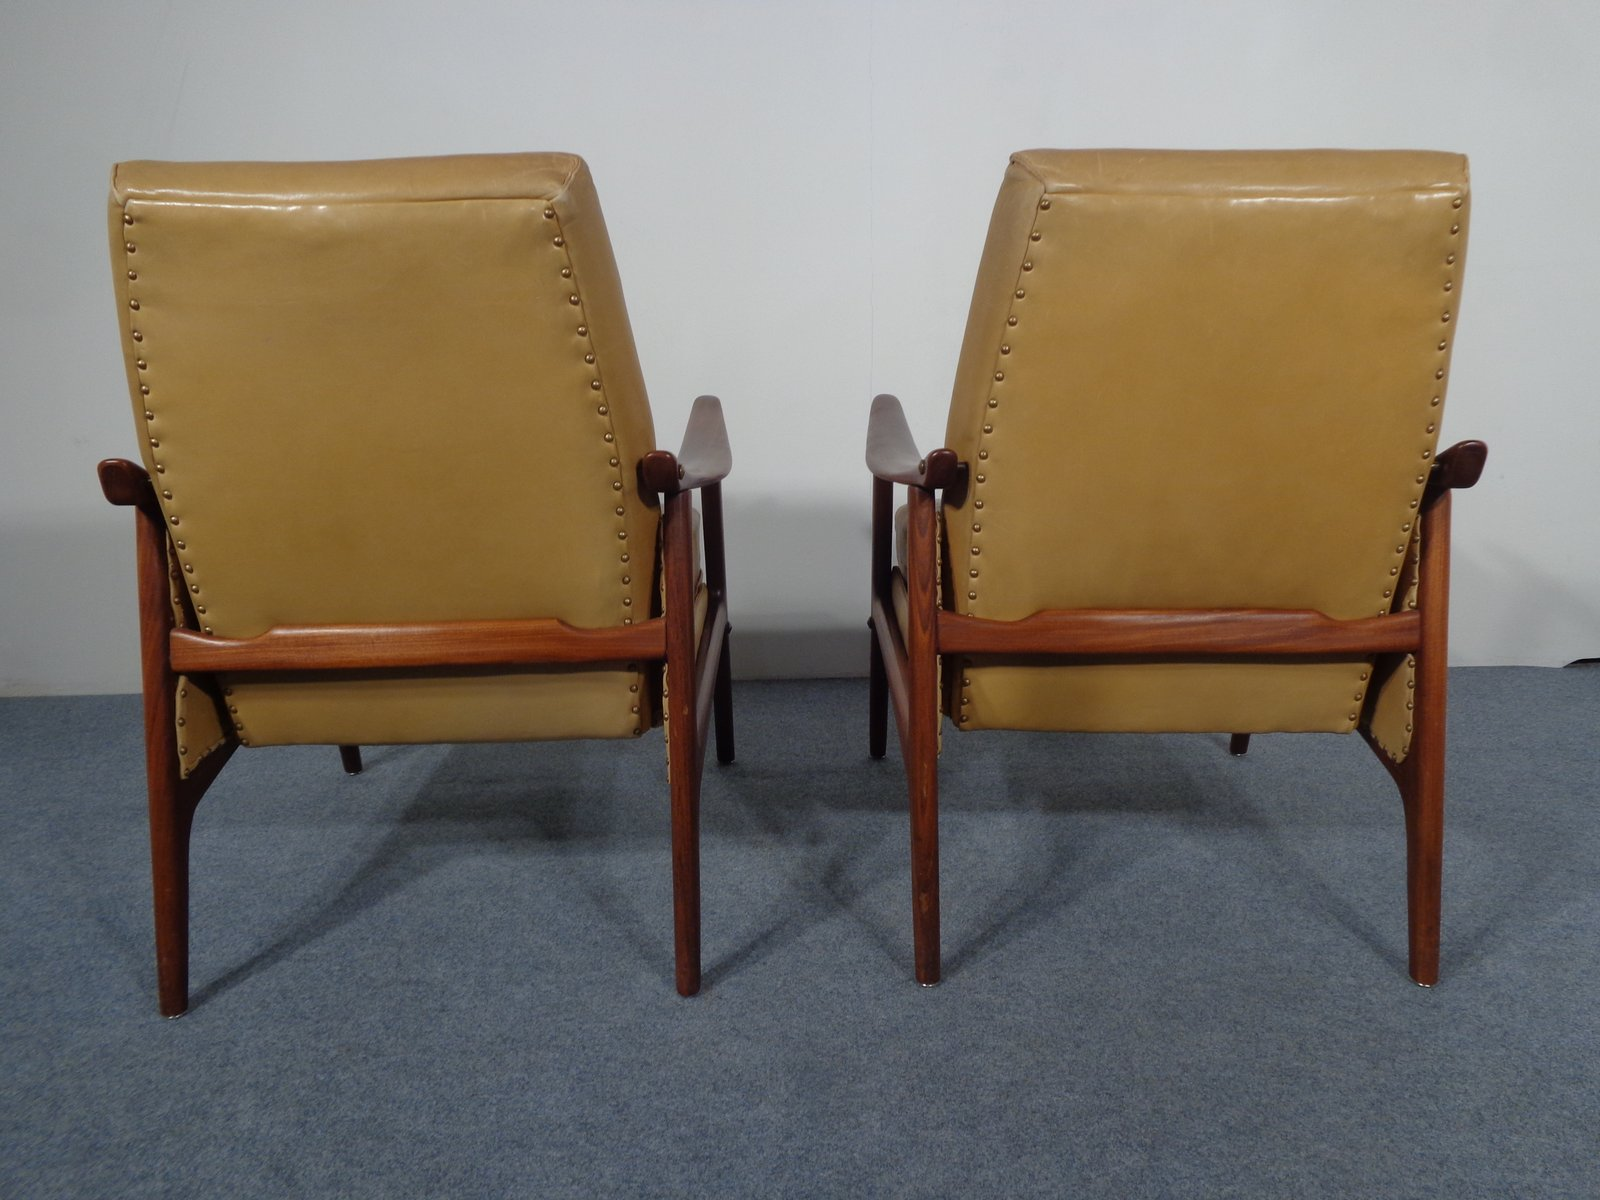 Vintage Danish Teak Amp Leather Lounge Chair For Sale At Pamono